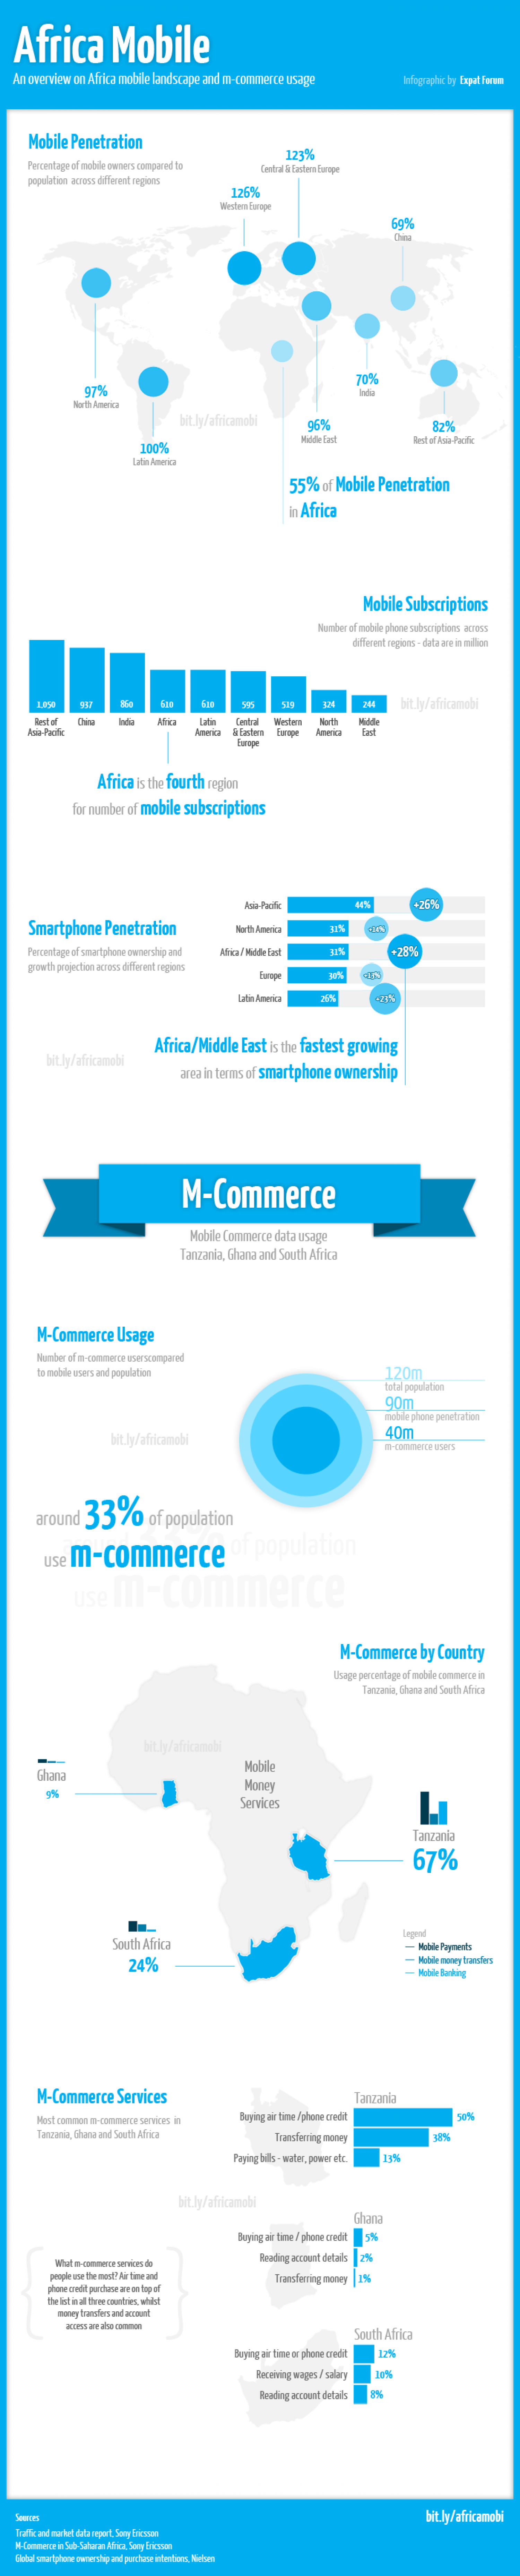 Africa Mobile Penetration & M-Commerce Usage Infographic